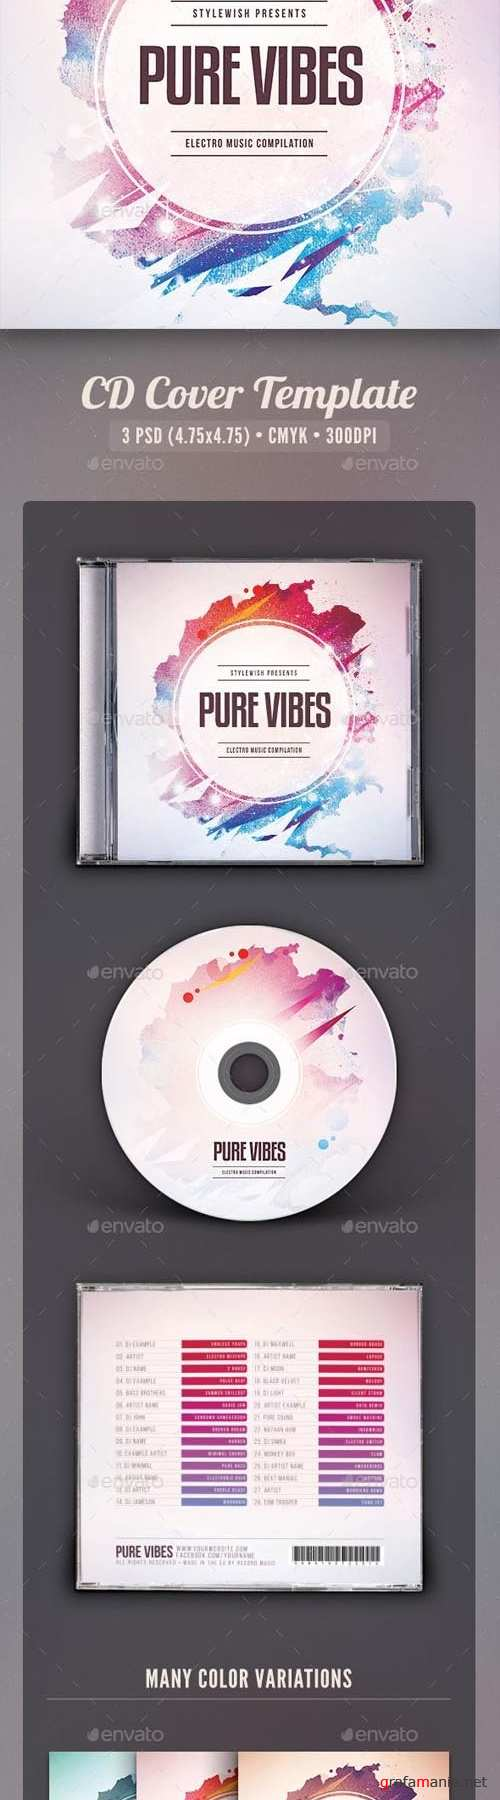 Pure Vibes CD Cover Artwork 16487199